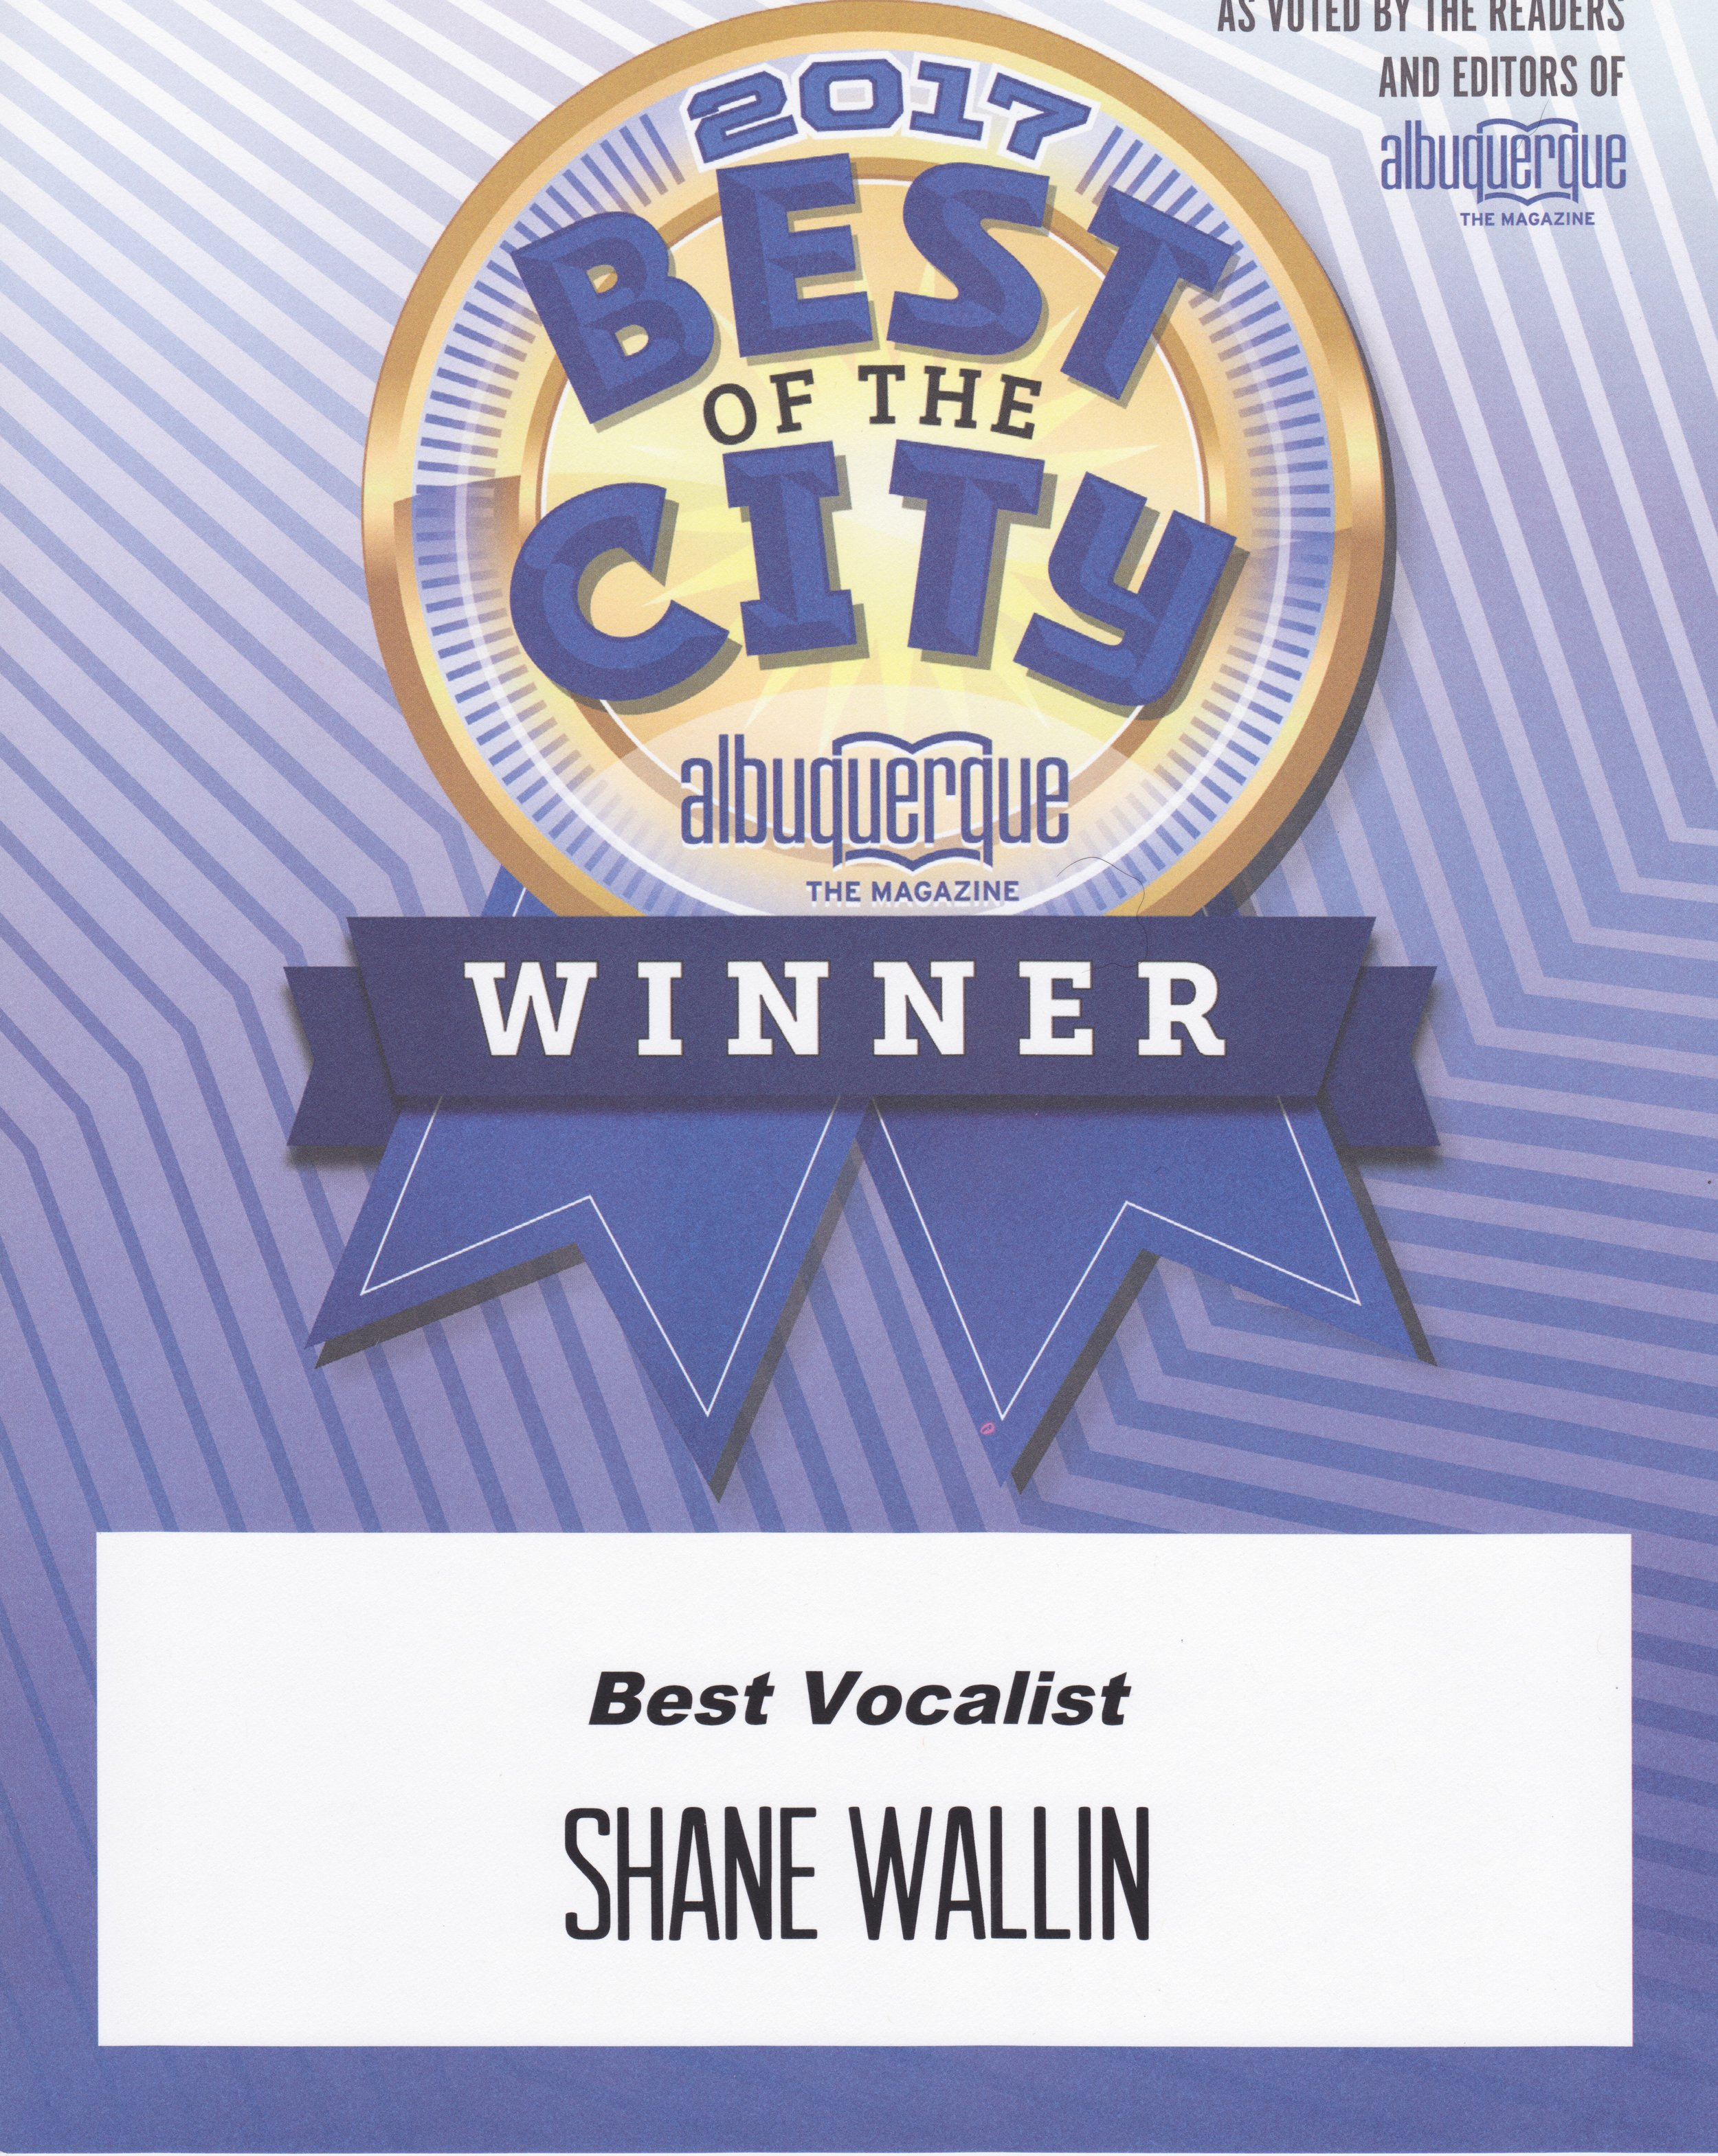 SHANE WALLIN, VOTED BEST VOCALIST, NEW MEXICO, by ALBUQUERQUE THE MAGAZINE, 2017.